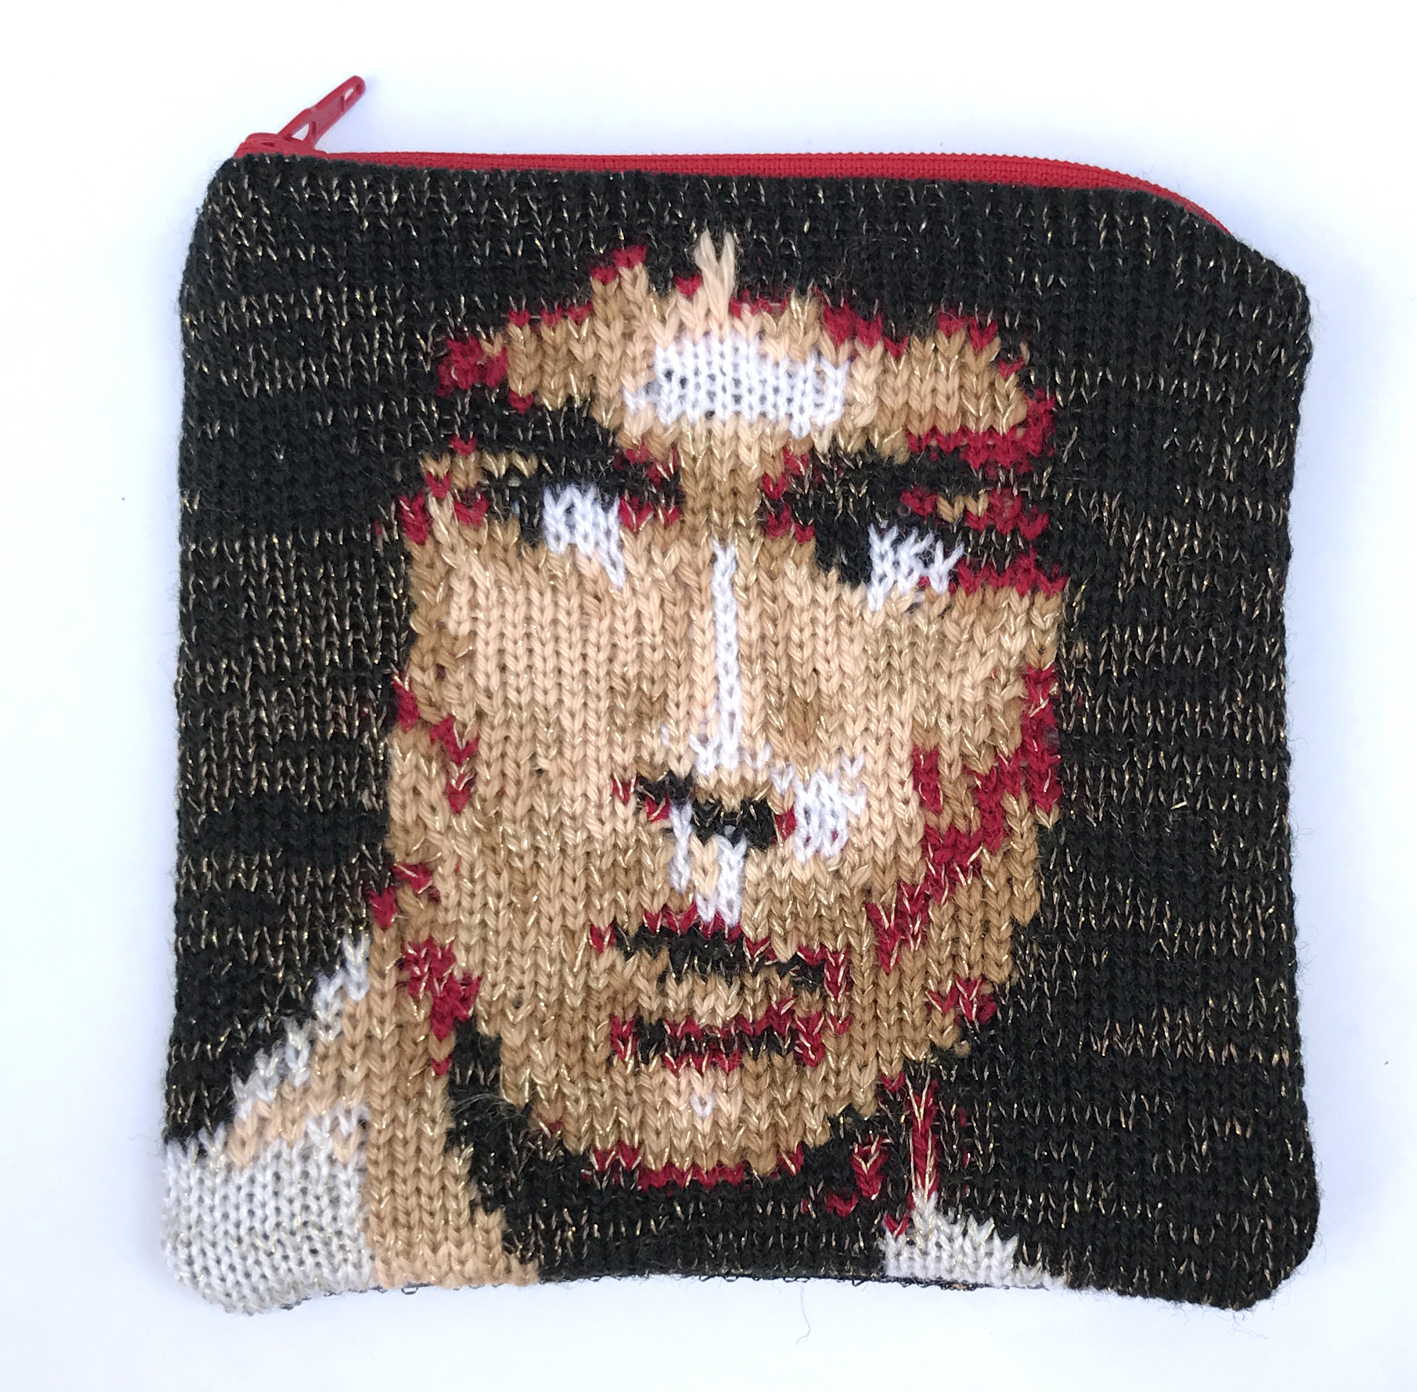 Bruce Lee pouch